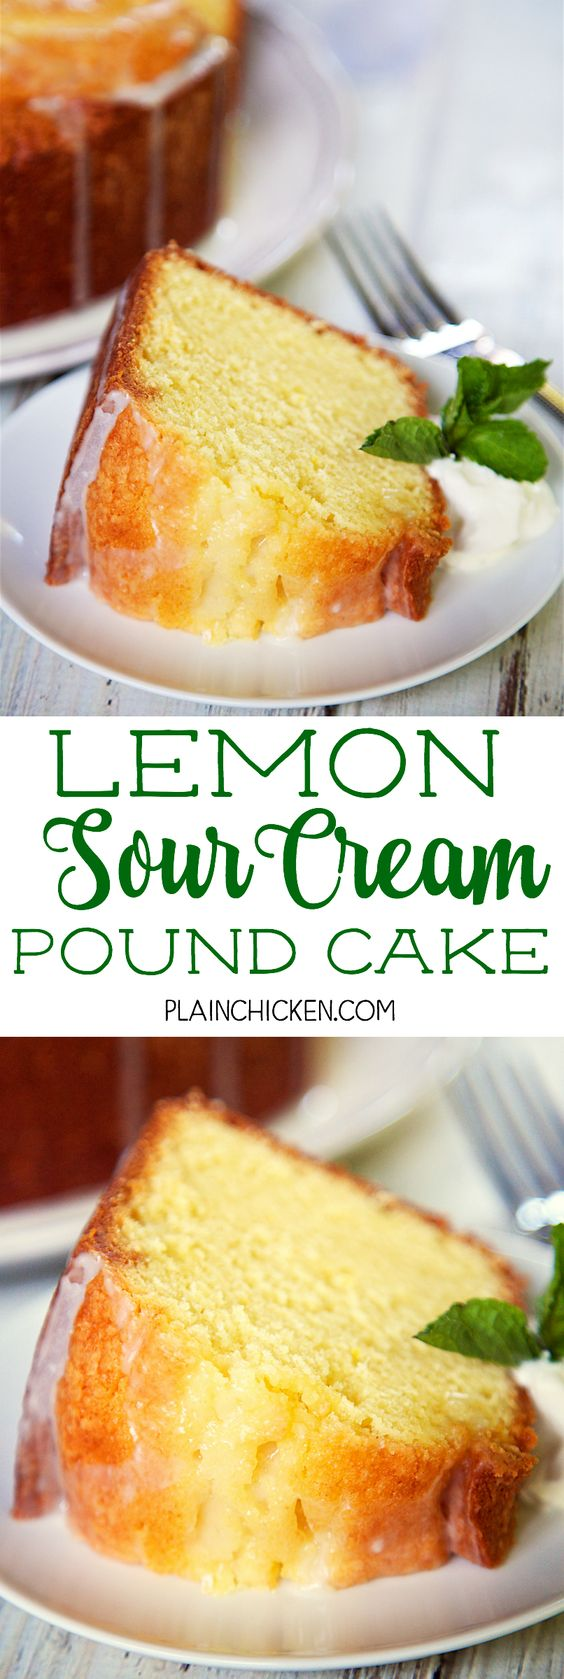 Lemon Sour Cream Pound Cake Recipe via Plain Chicken - the most AMAZING pound cake I've ever eaten! So easy and delicious! Top the cake with a lemon glaze for more yummy lemon flavor. Serve the cake with whipped cream, mint and fresh berries. I took this to a party and everyone asked for the recipe! The BEST Easy Lemon Desserts and Treats Recipes - Perfect For Easter, Mother's Day Brunch, Bridal or Baby Showers and Pretty Spring and Summer Holiday Party Refreshments!